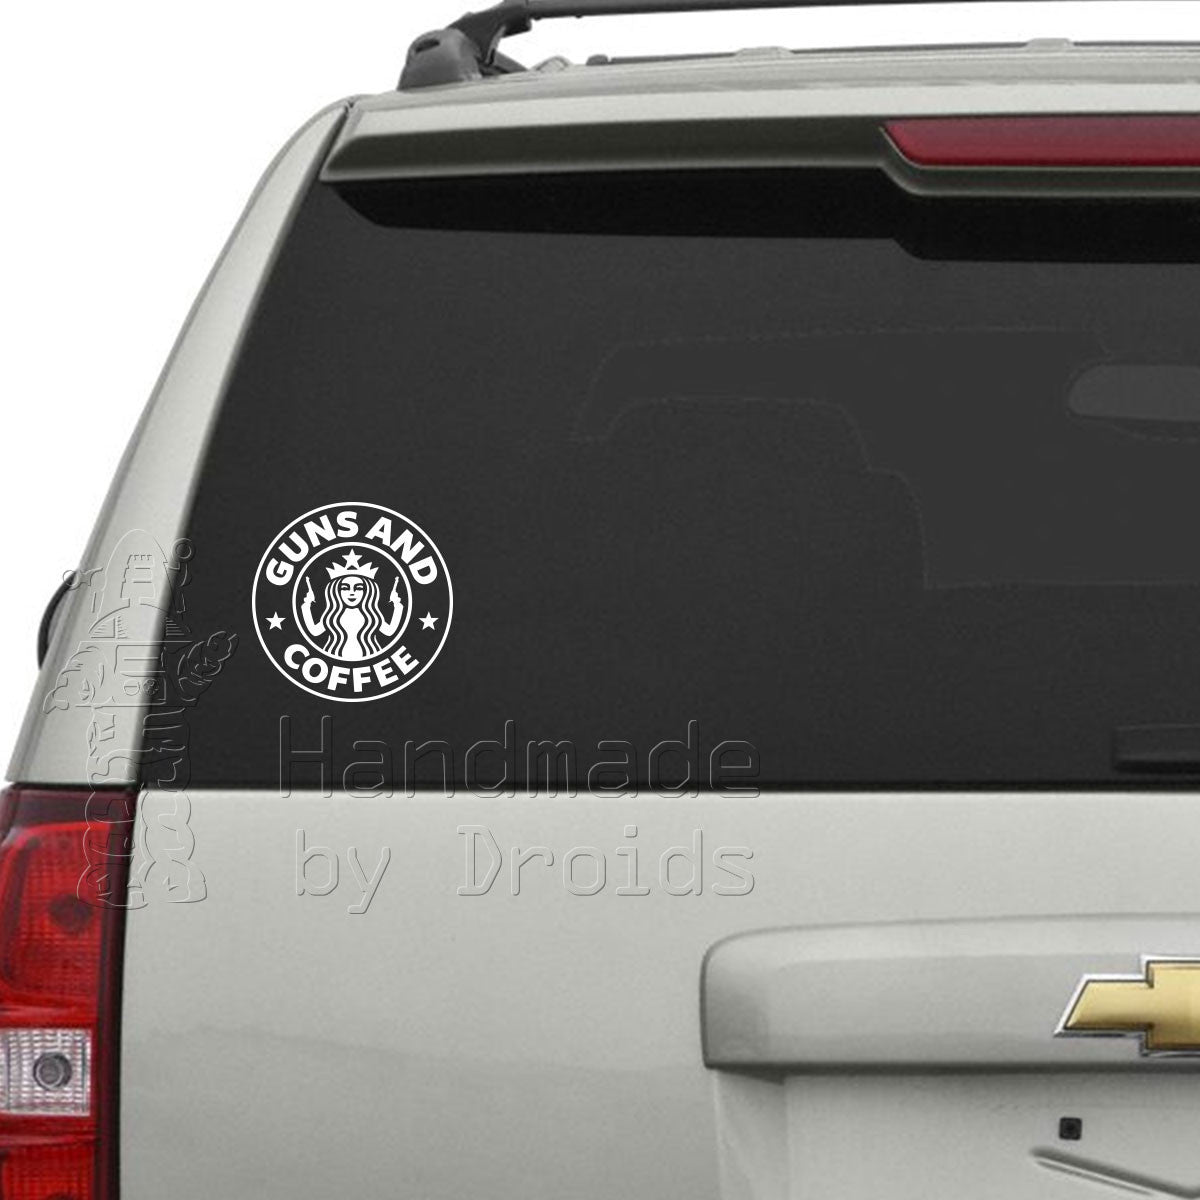 Guns and Coffee Vinyl Decal